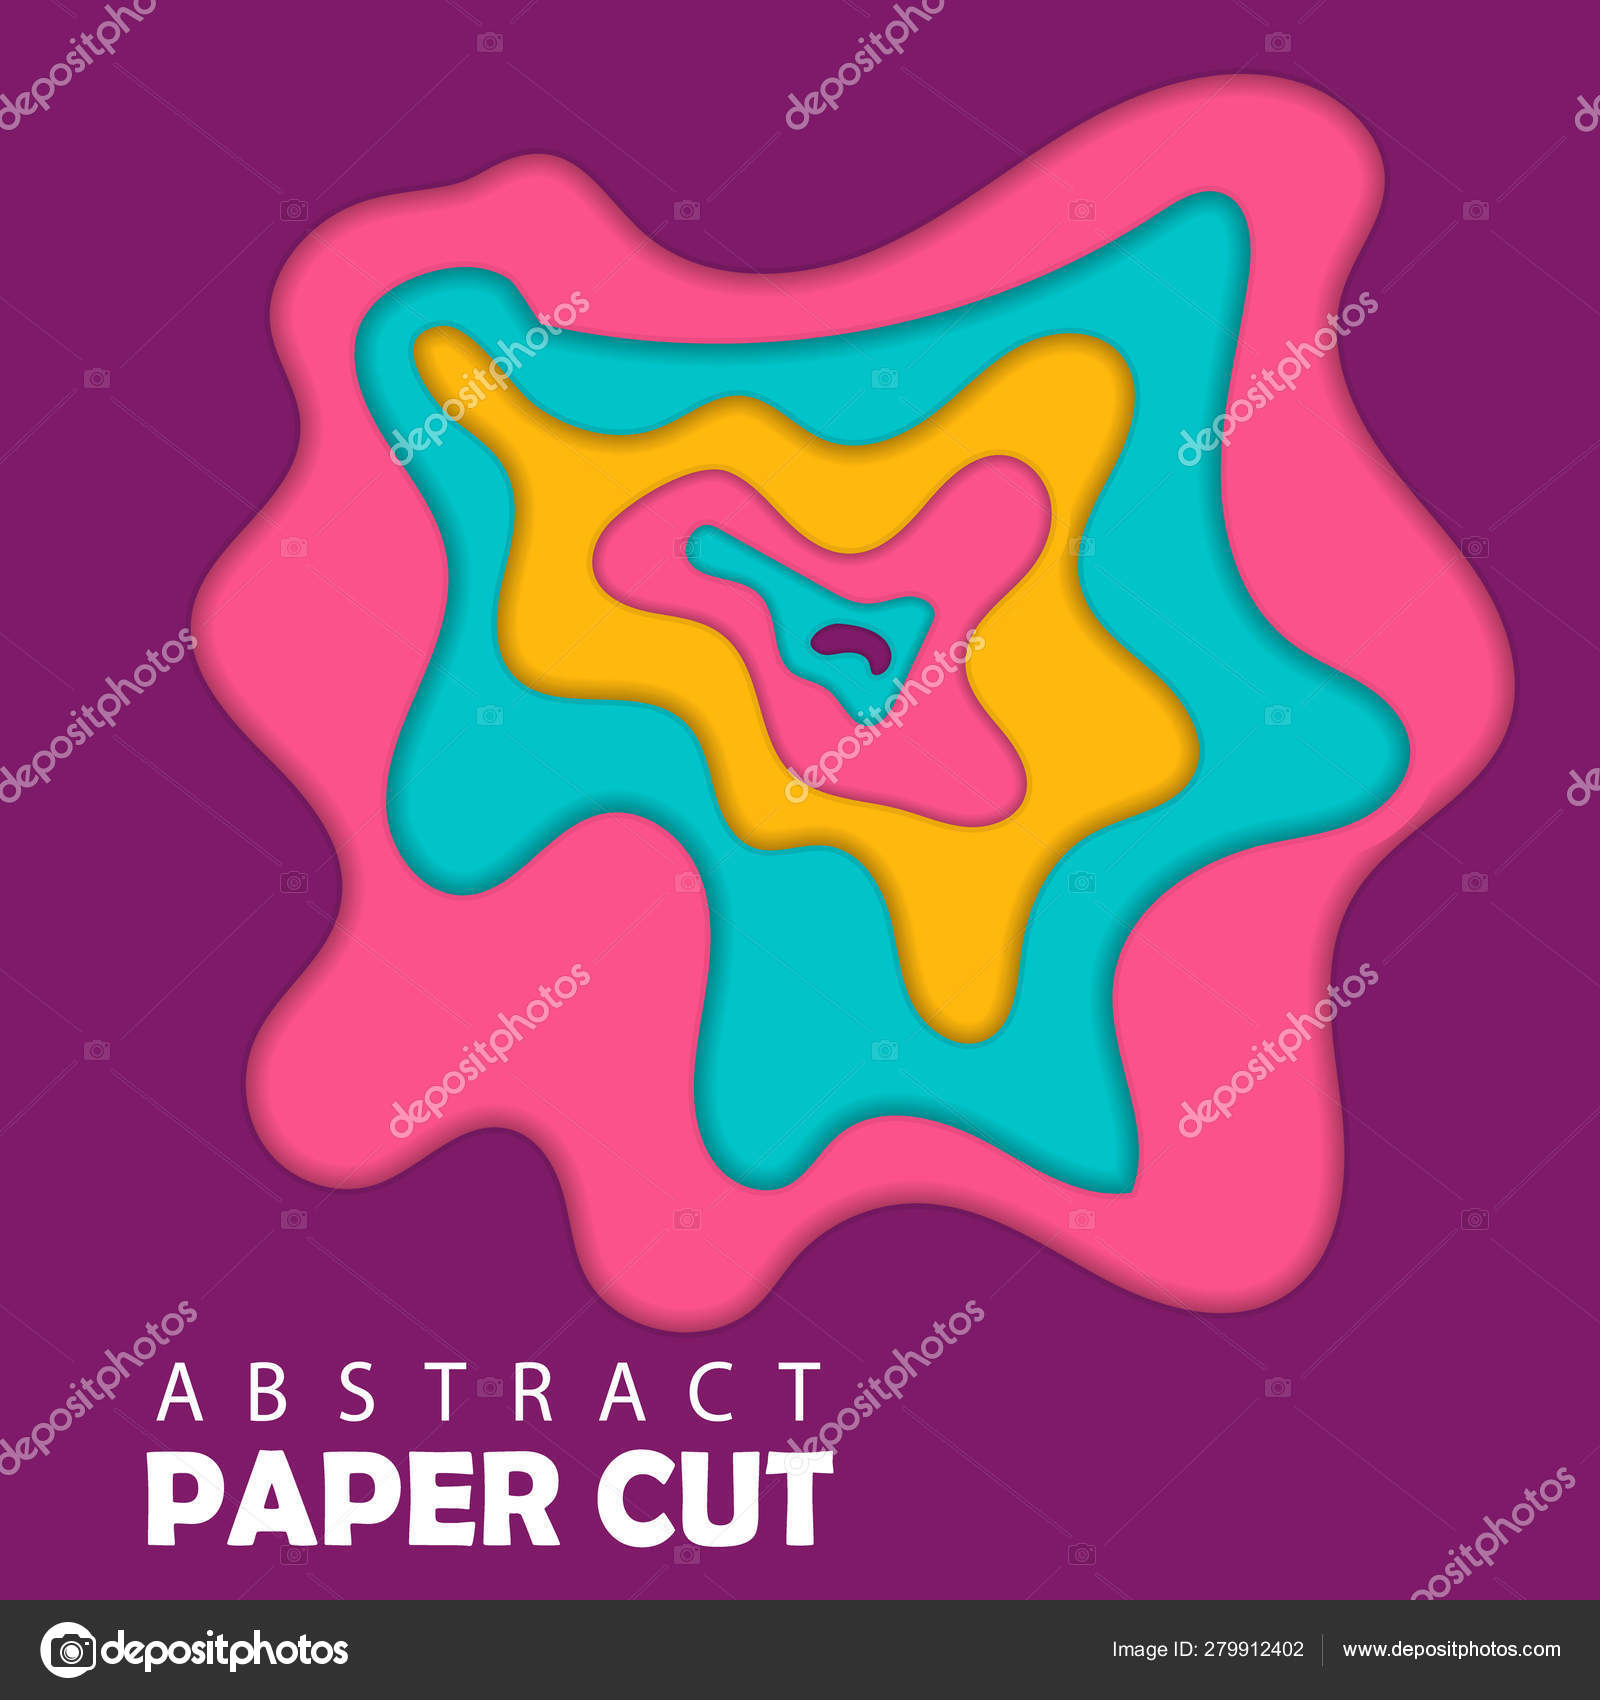 Modern Template Paper Cut Template Abstract Wave Shapes